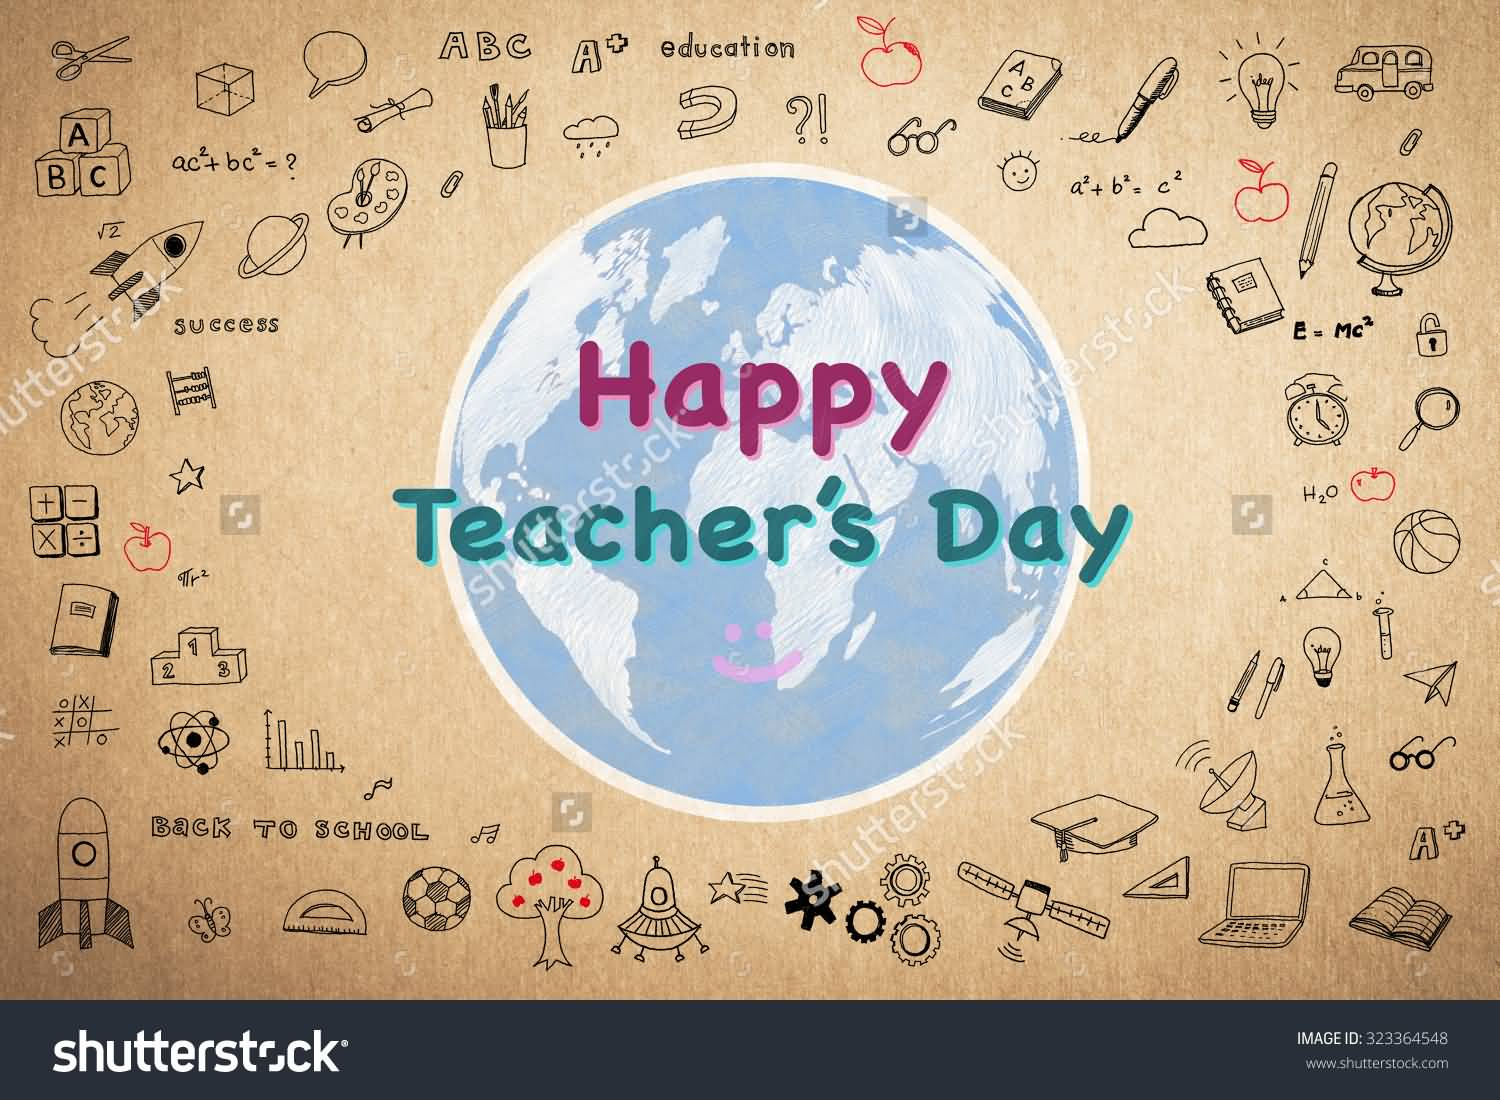 Images of happy teachers rsquo day 2016 fan 40 best greetings for happy world teachers day 2016 images kristyandbryce Images